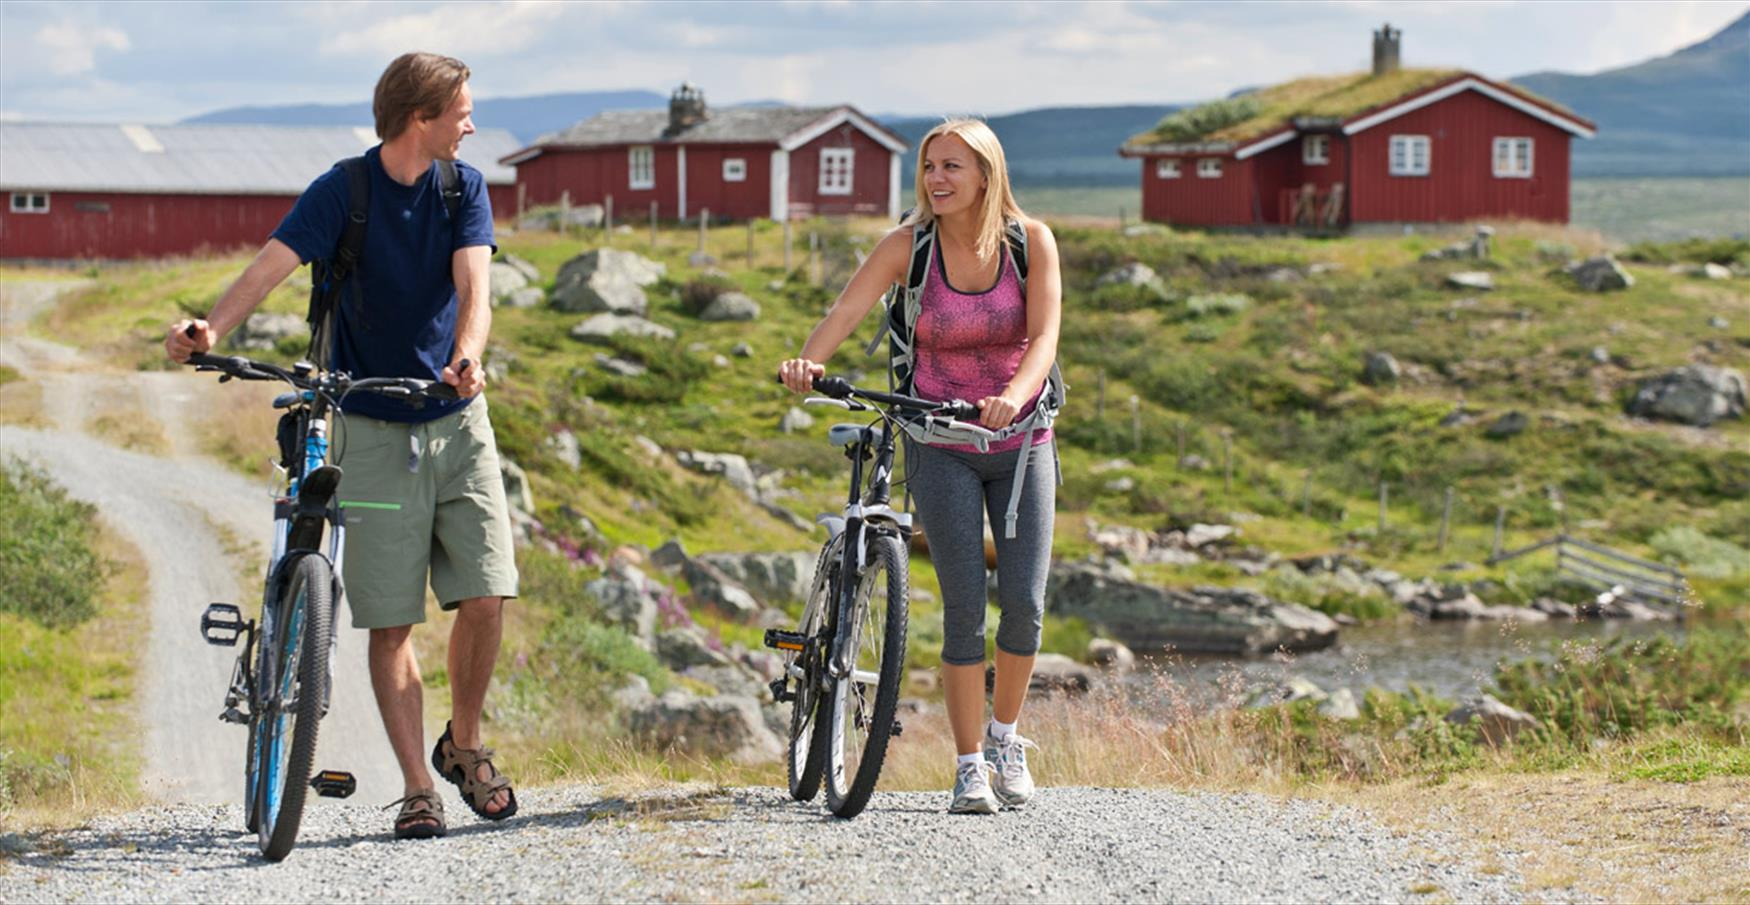 The cycling route Mjølkevegen was voted one of Norway's most beautiful. It mostly runs through Valdres' high mountain areas.